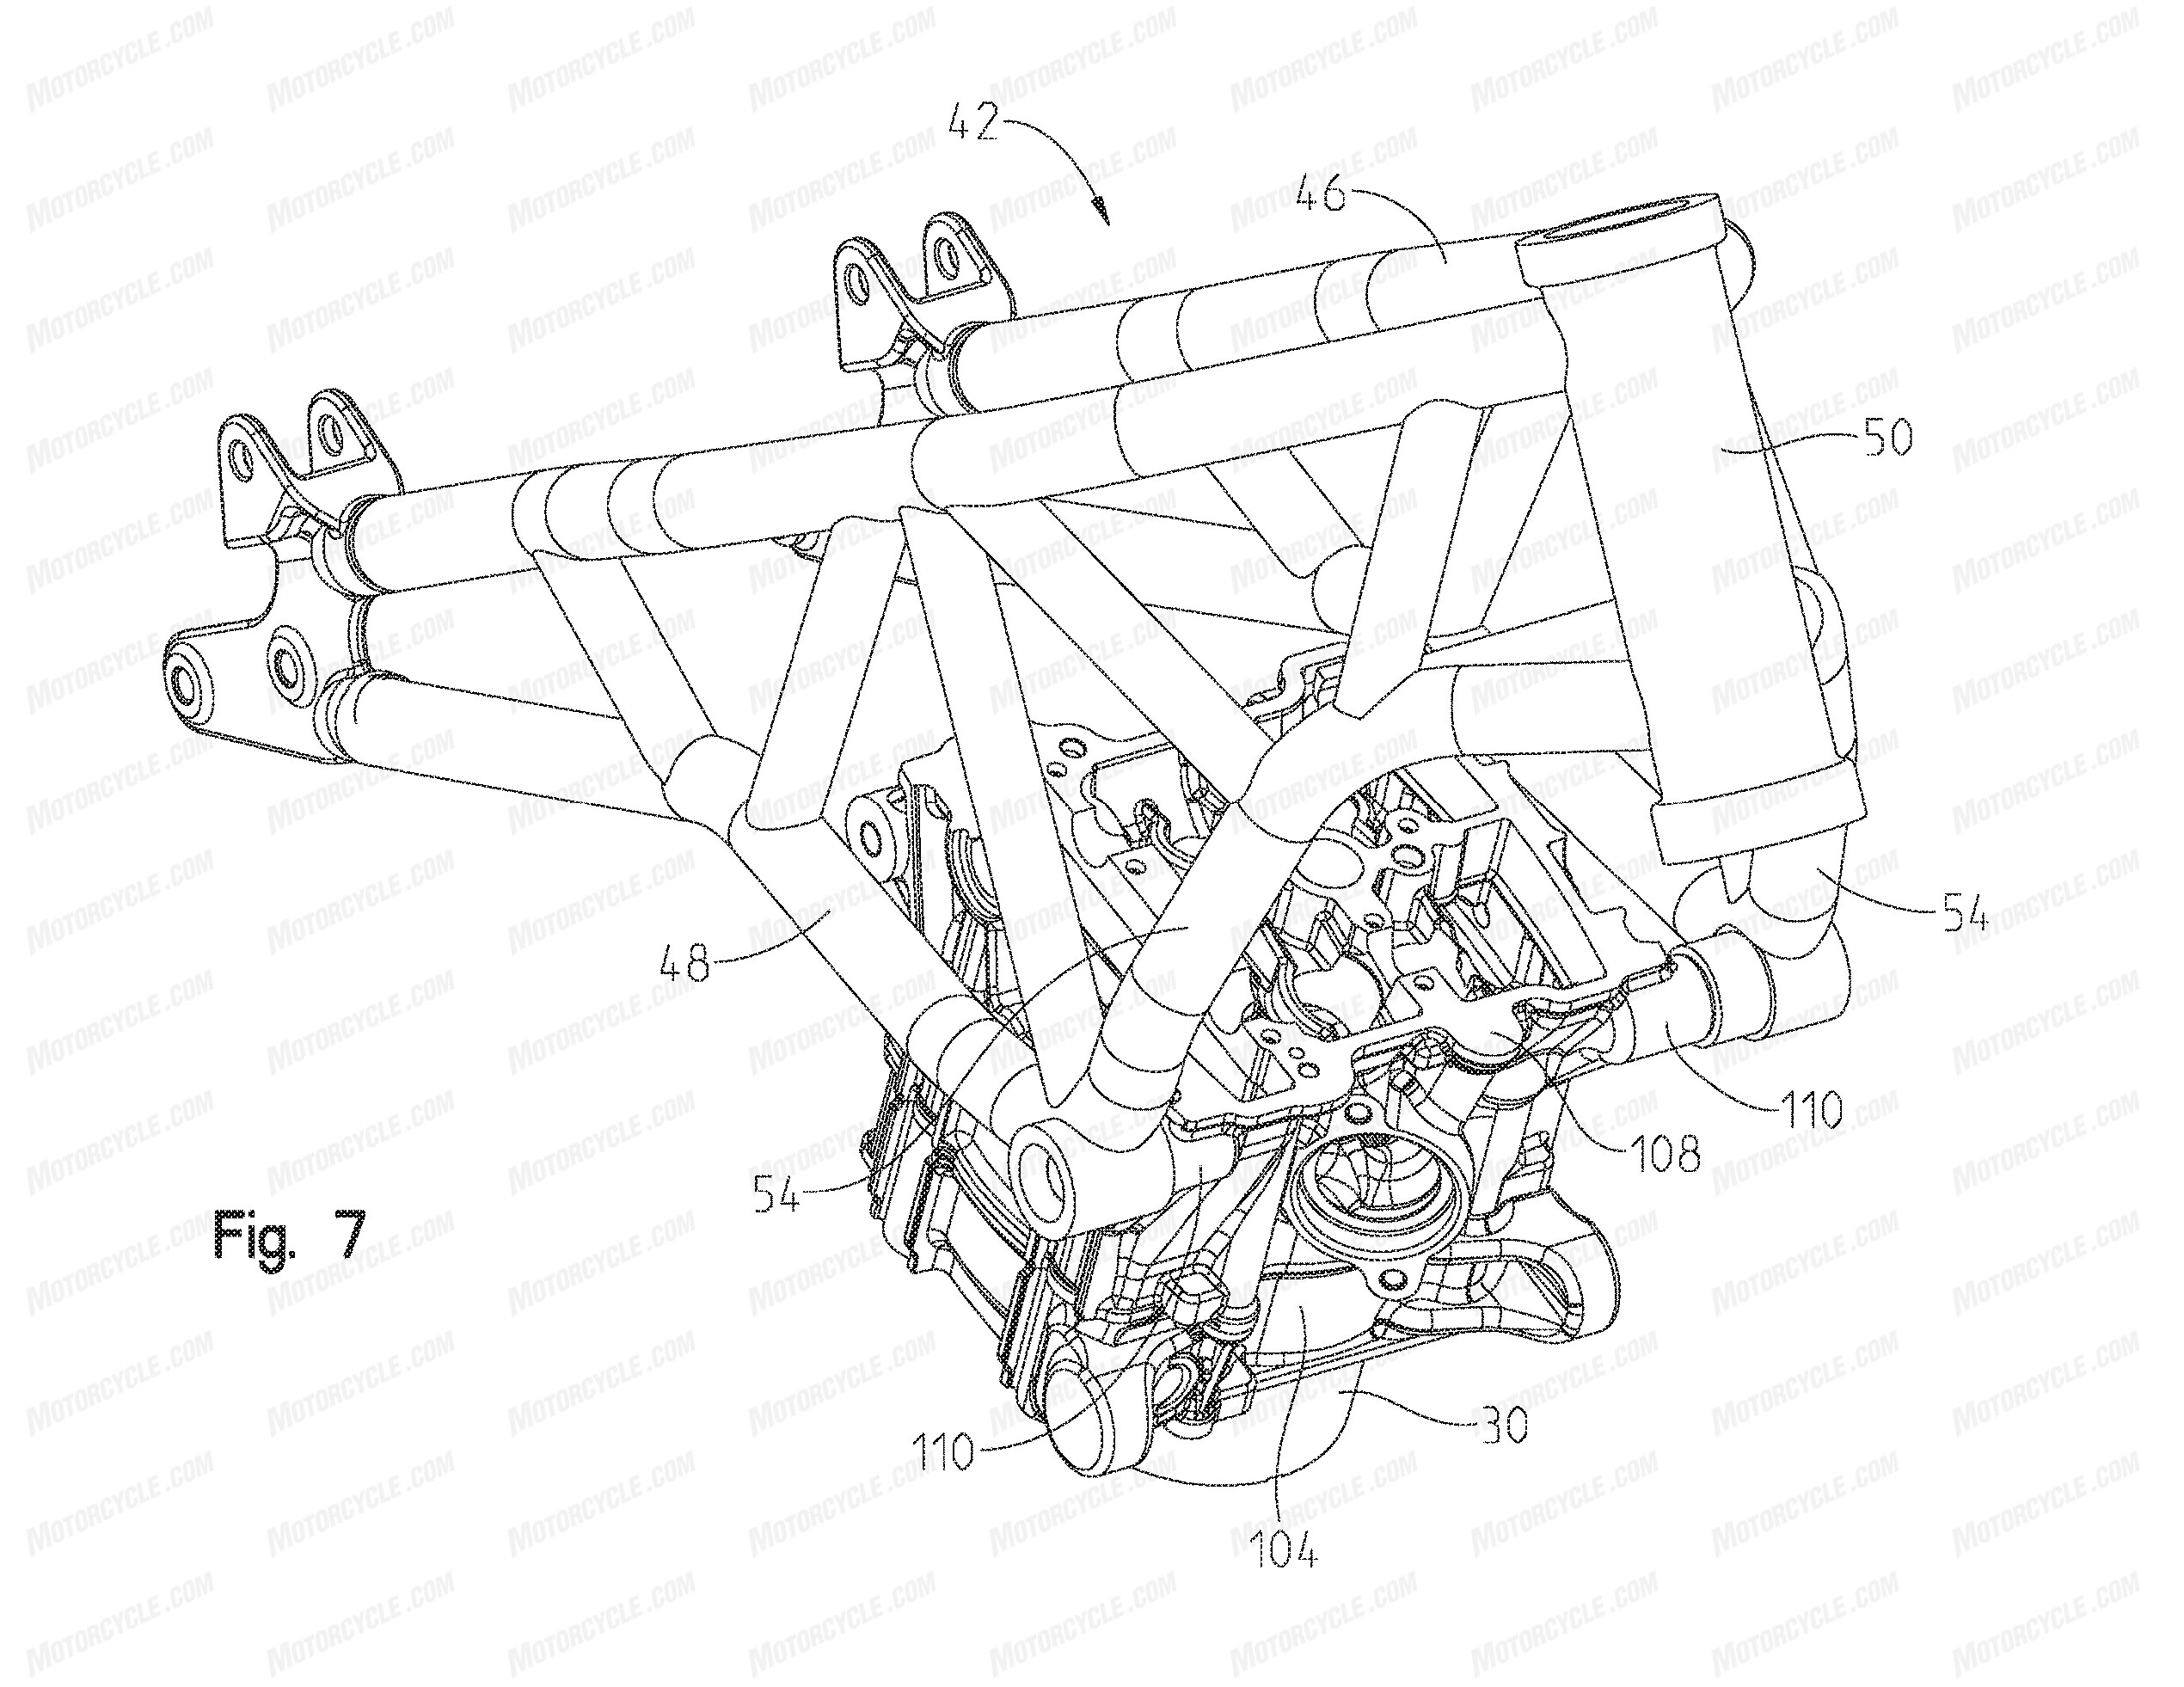 UPDATE: Leaked Photo & Patent Filings Reveal Details of